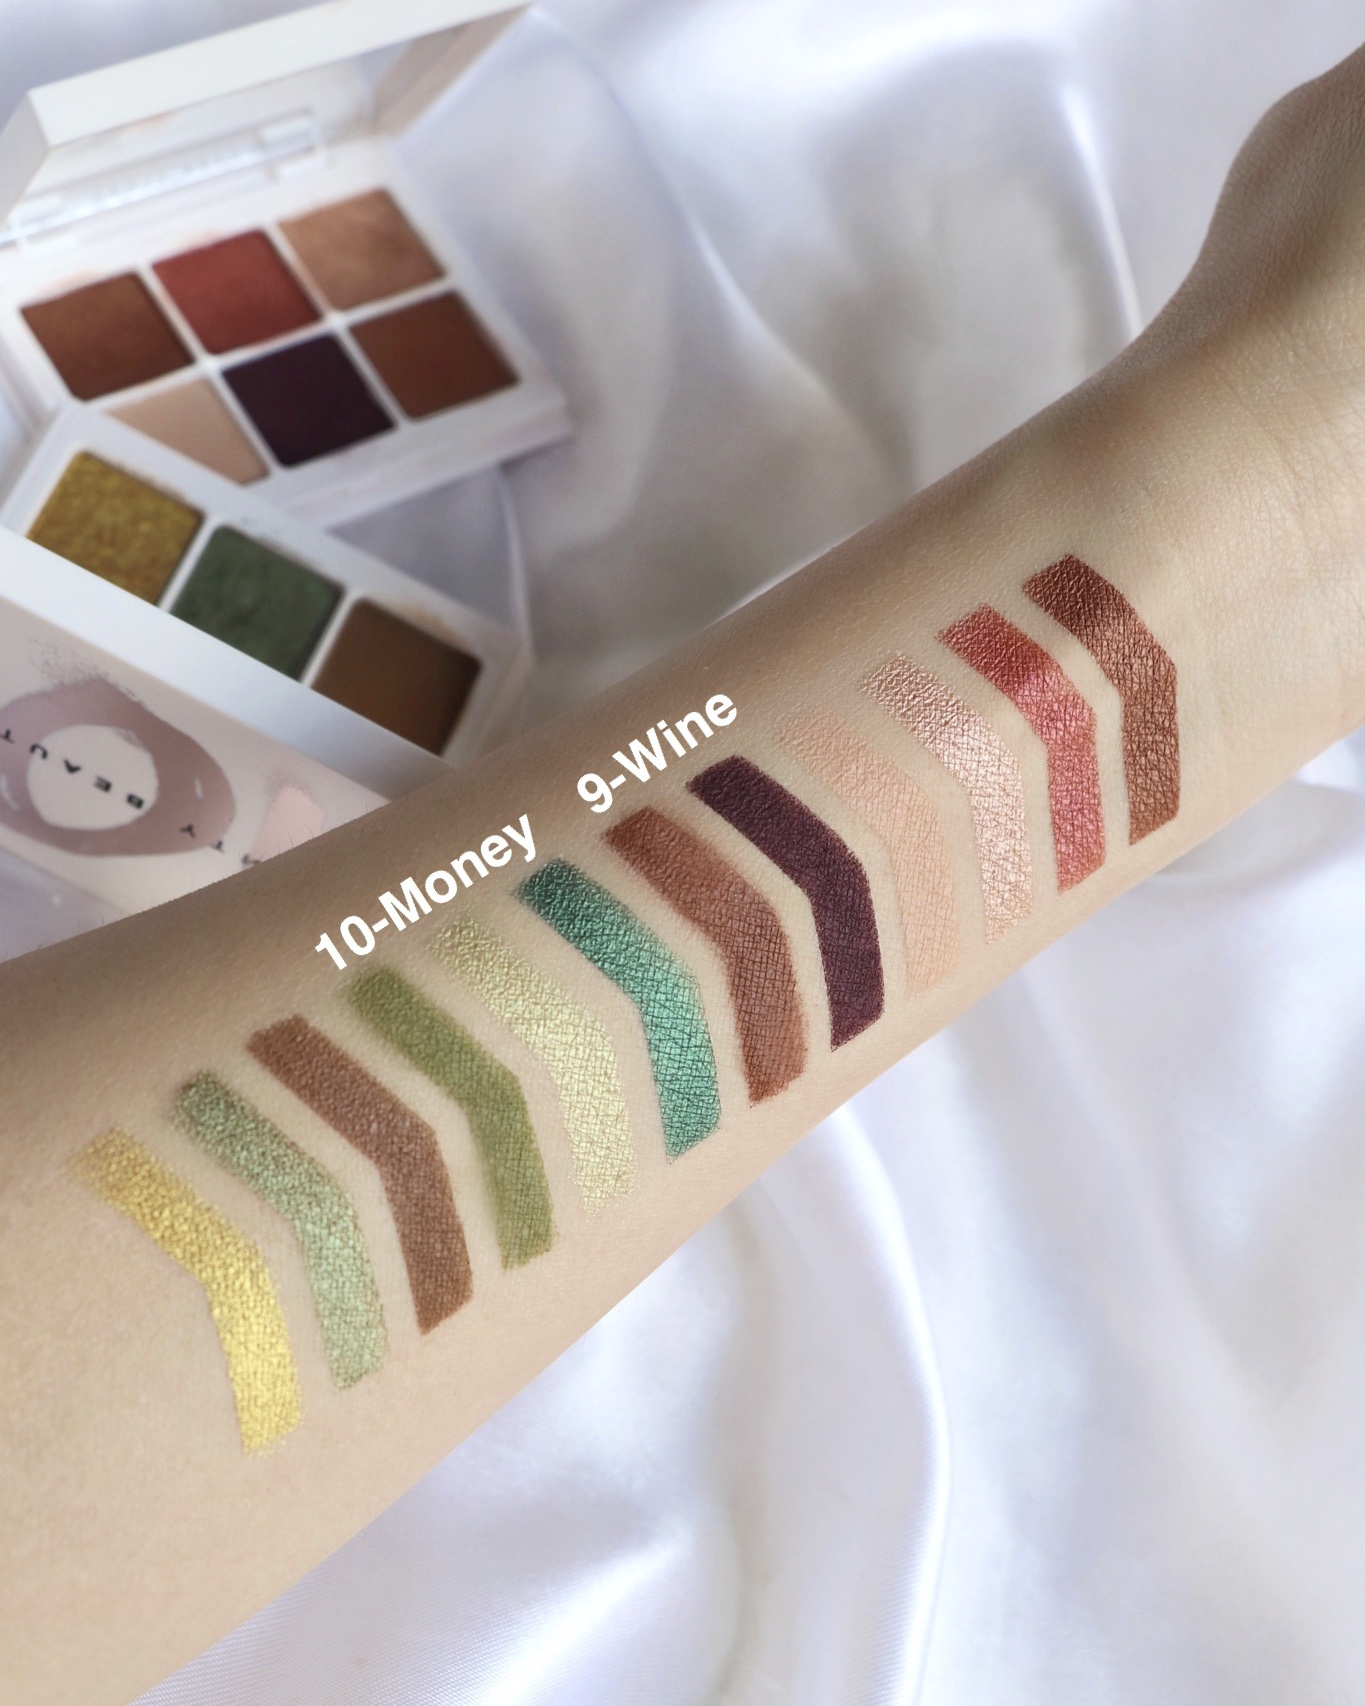 Fenty Beauty NEW SNAP SHADOWS MIX & MATCH EYESHADOW PALETTE Swatches